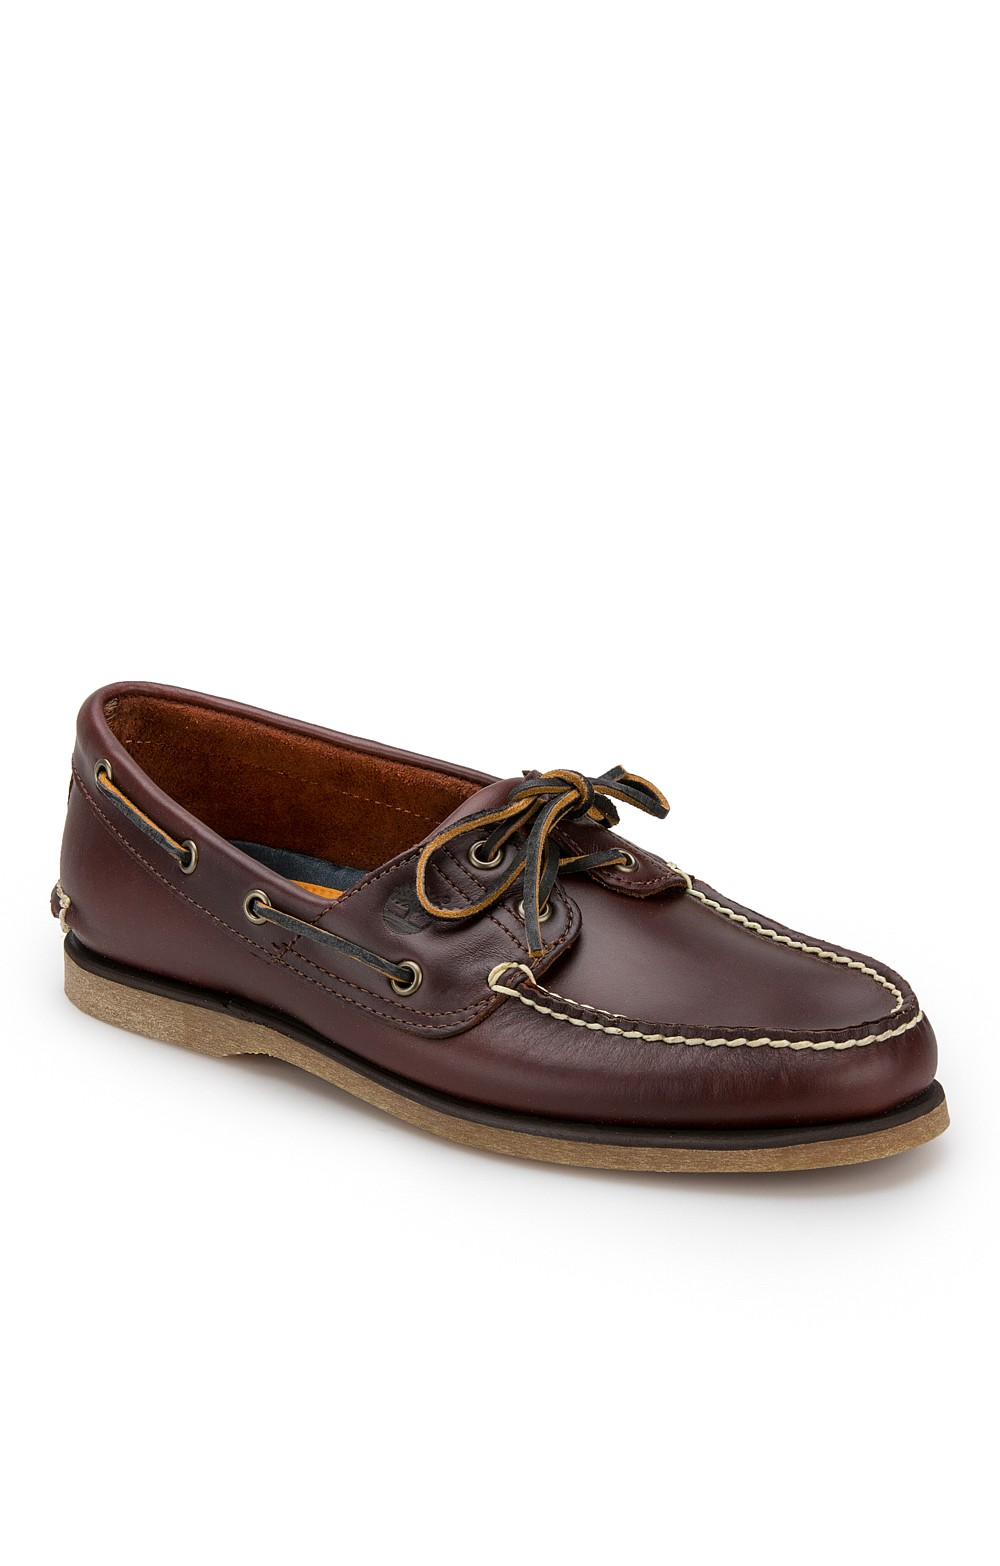 492fcb30d753 Mens Timberland 2 Eye Boat Shoe